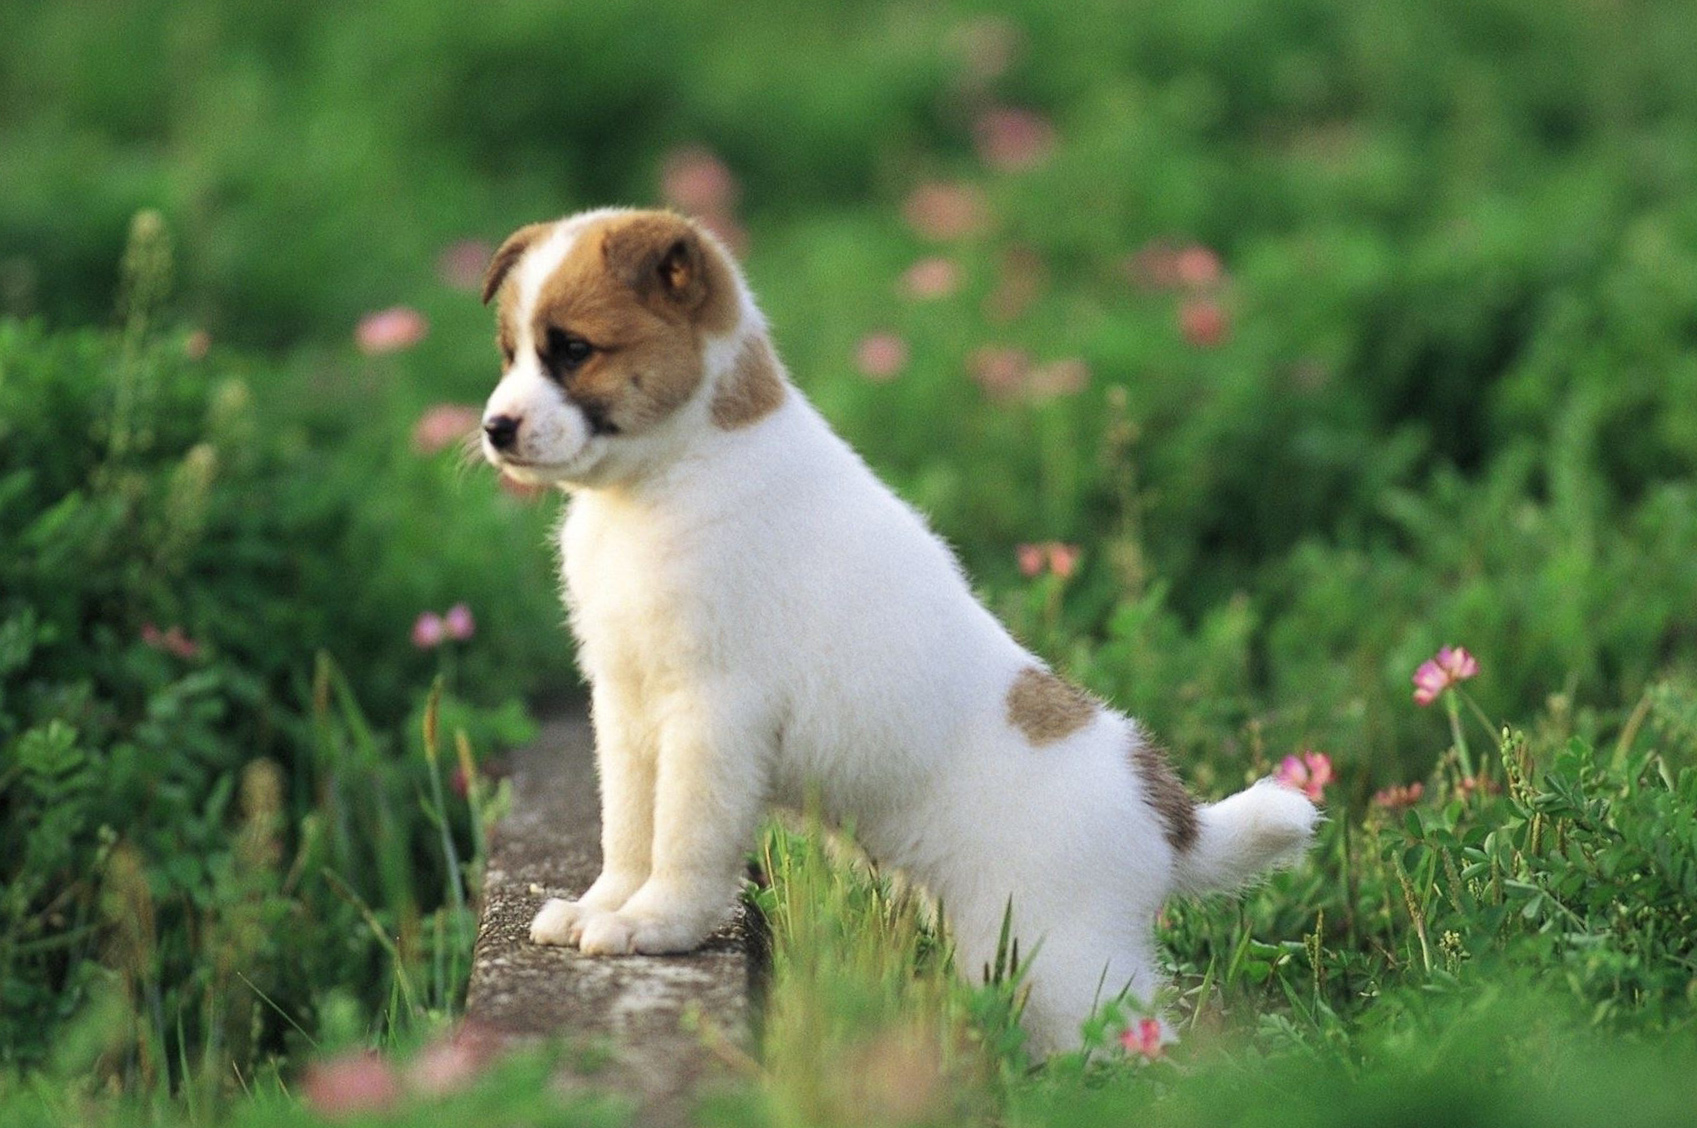 Wallpapers Of Dog Posted By Ryan Walker